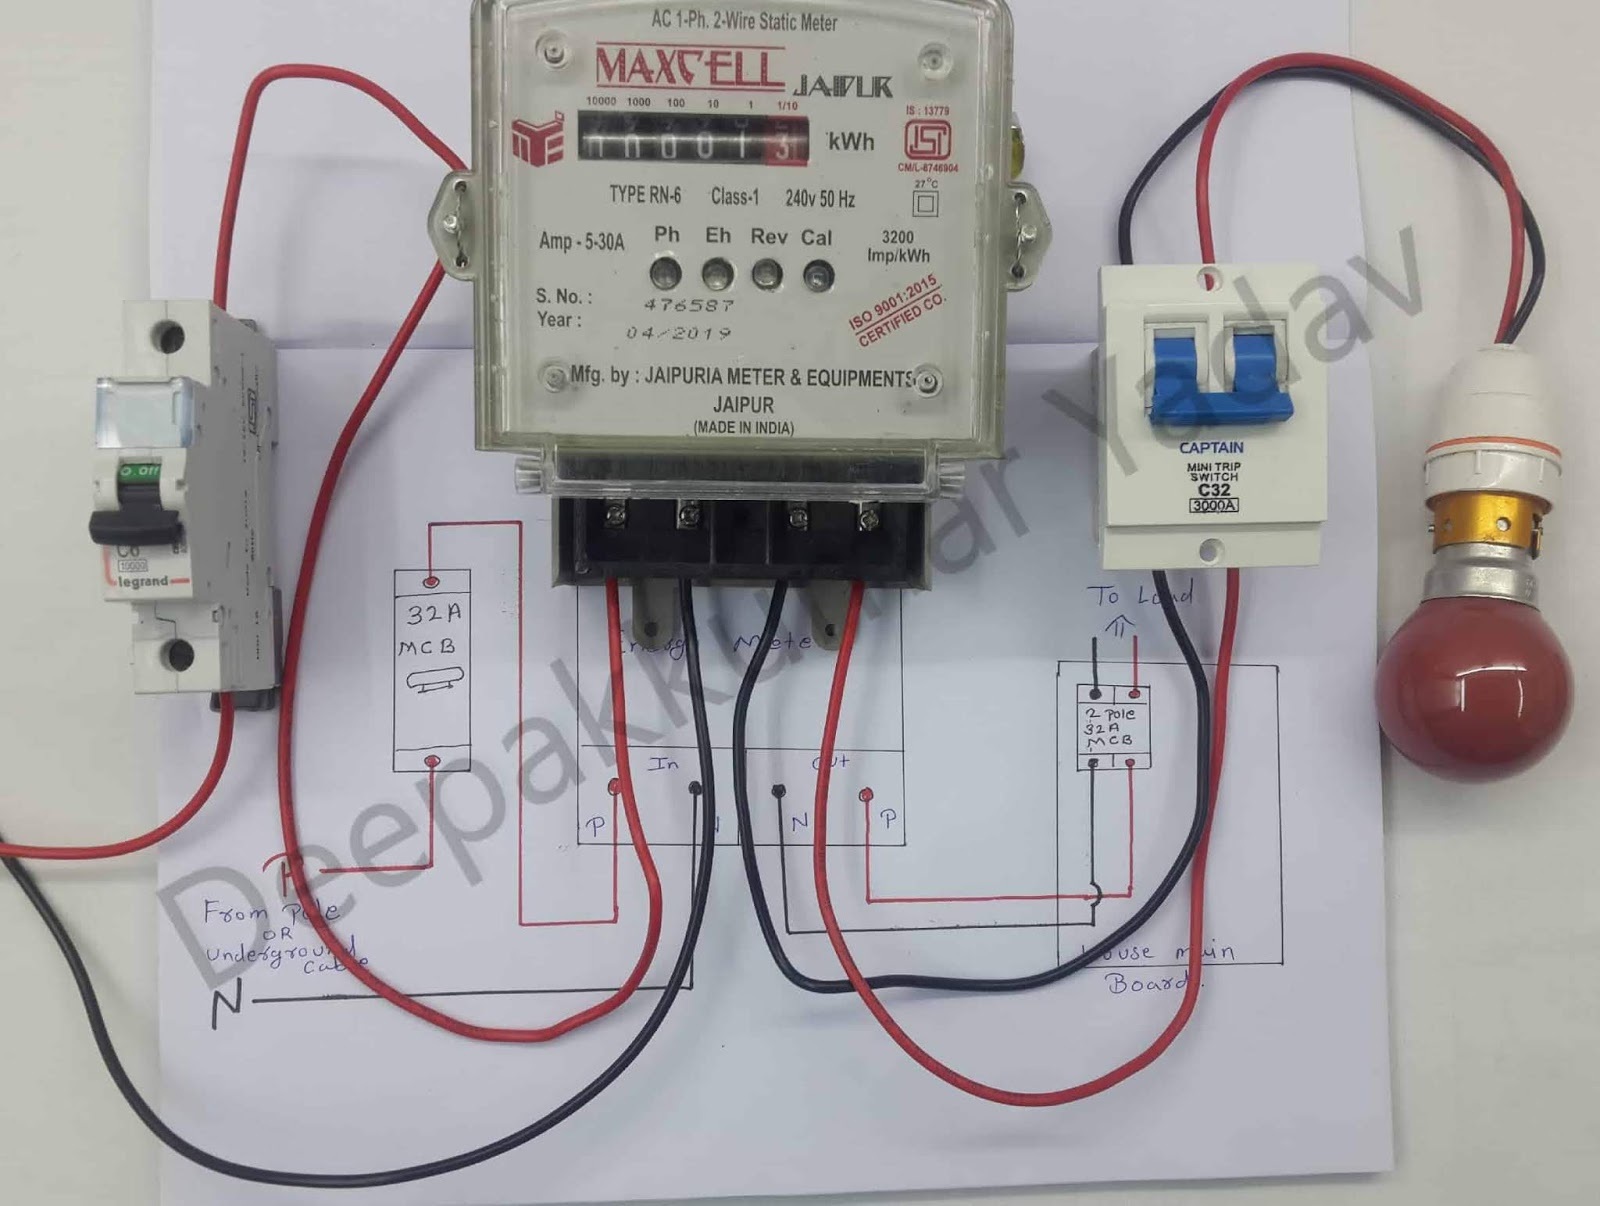 Electricity meter, Meter Wiring Connection, बिजली ... on transformer electrical connections, poor electrical connections, electrical plug connections, electrical wire connections, electrical harness connections, electrical lights, electrical capacitors, electrical conduit connections, electrical fuses, electrical panel connections, electrical connection to house, electrical connections diagrams, bad electrical connections, electrical meters, electrical switch connections, electrical test connections, electrical motor connections, electrical service connections, electrical hardware,